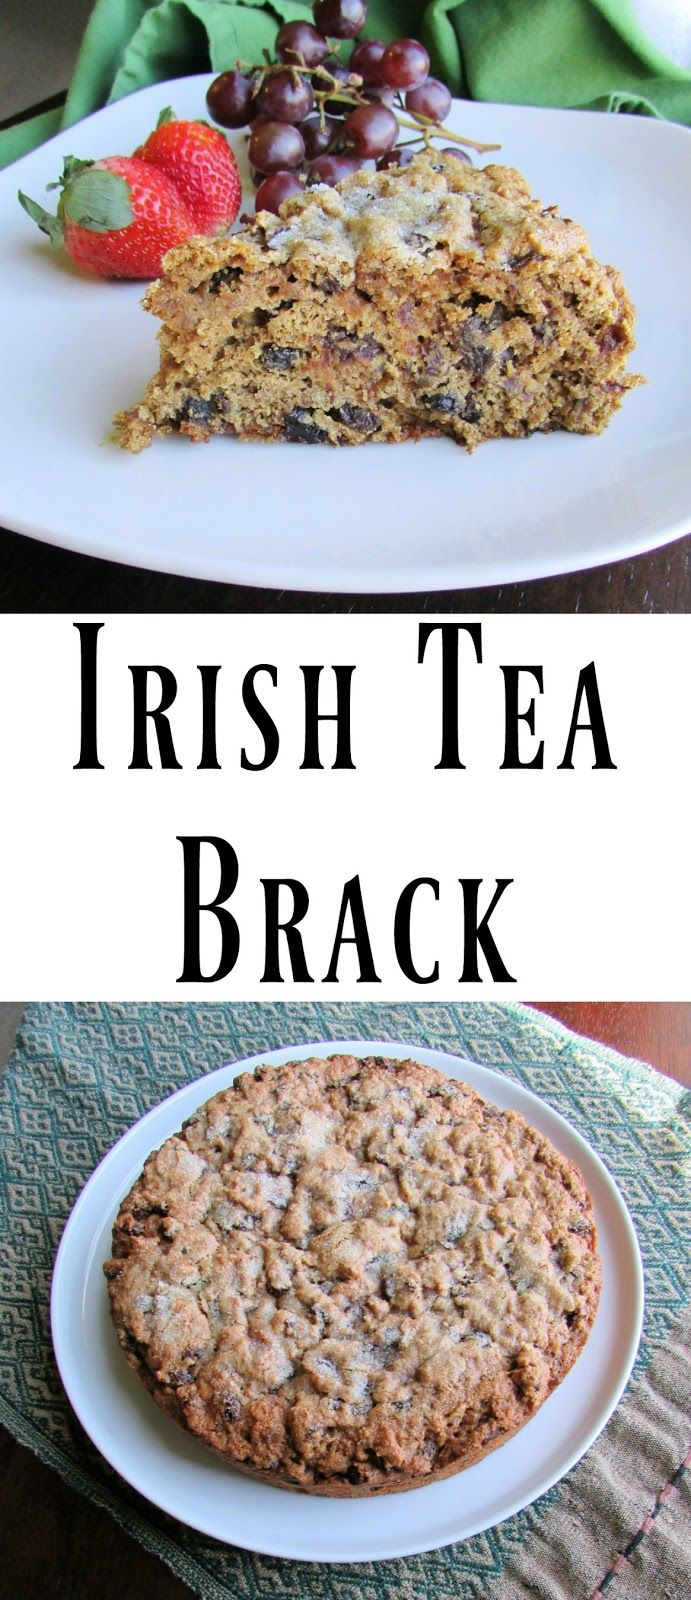 This Irish Tea Brack is a delicious tea time treat or breakfast slice.  It is full of fruit and whole grains for a filling treat as well.  Perfect for #StPatricksDay